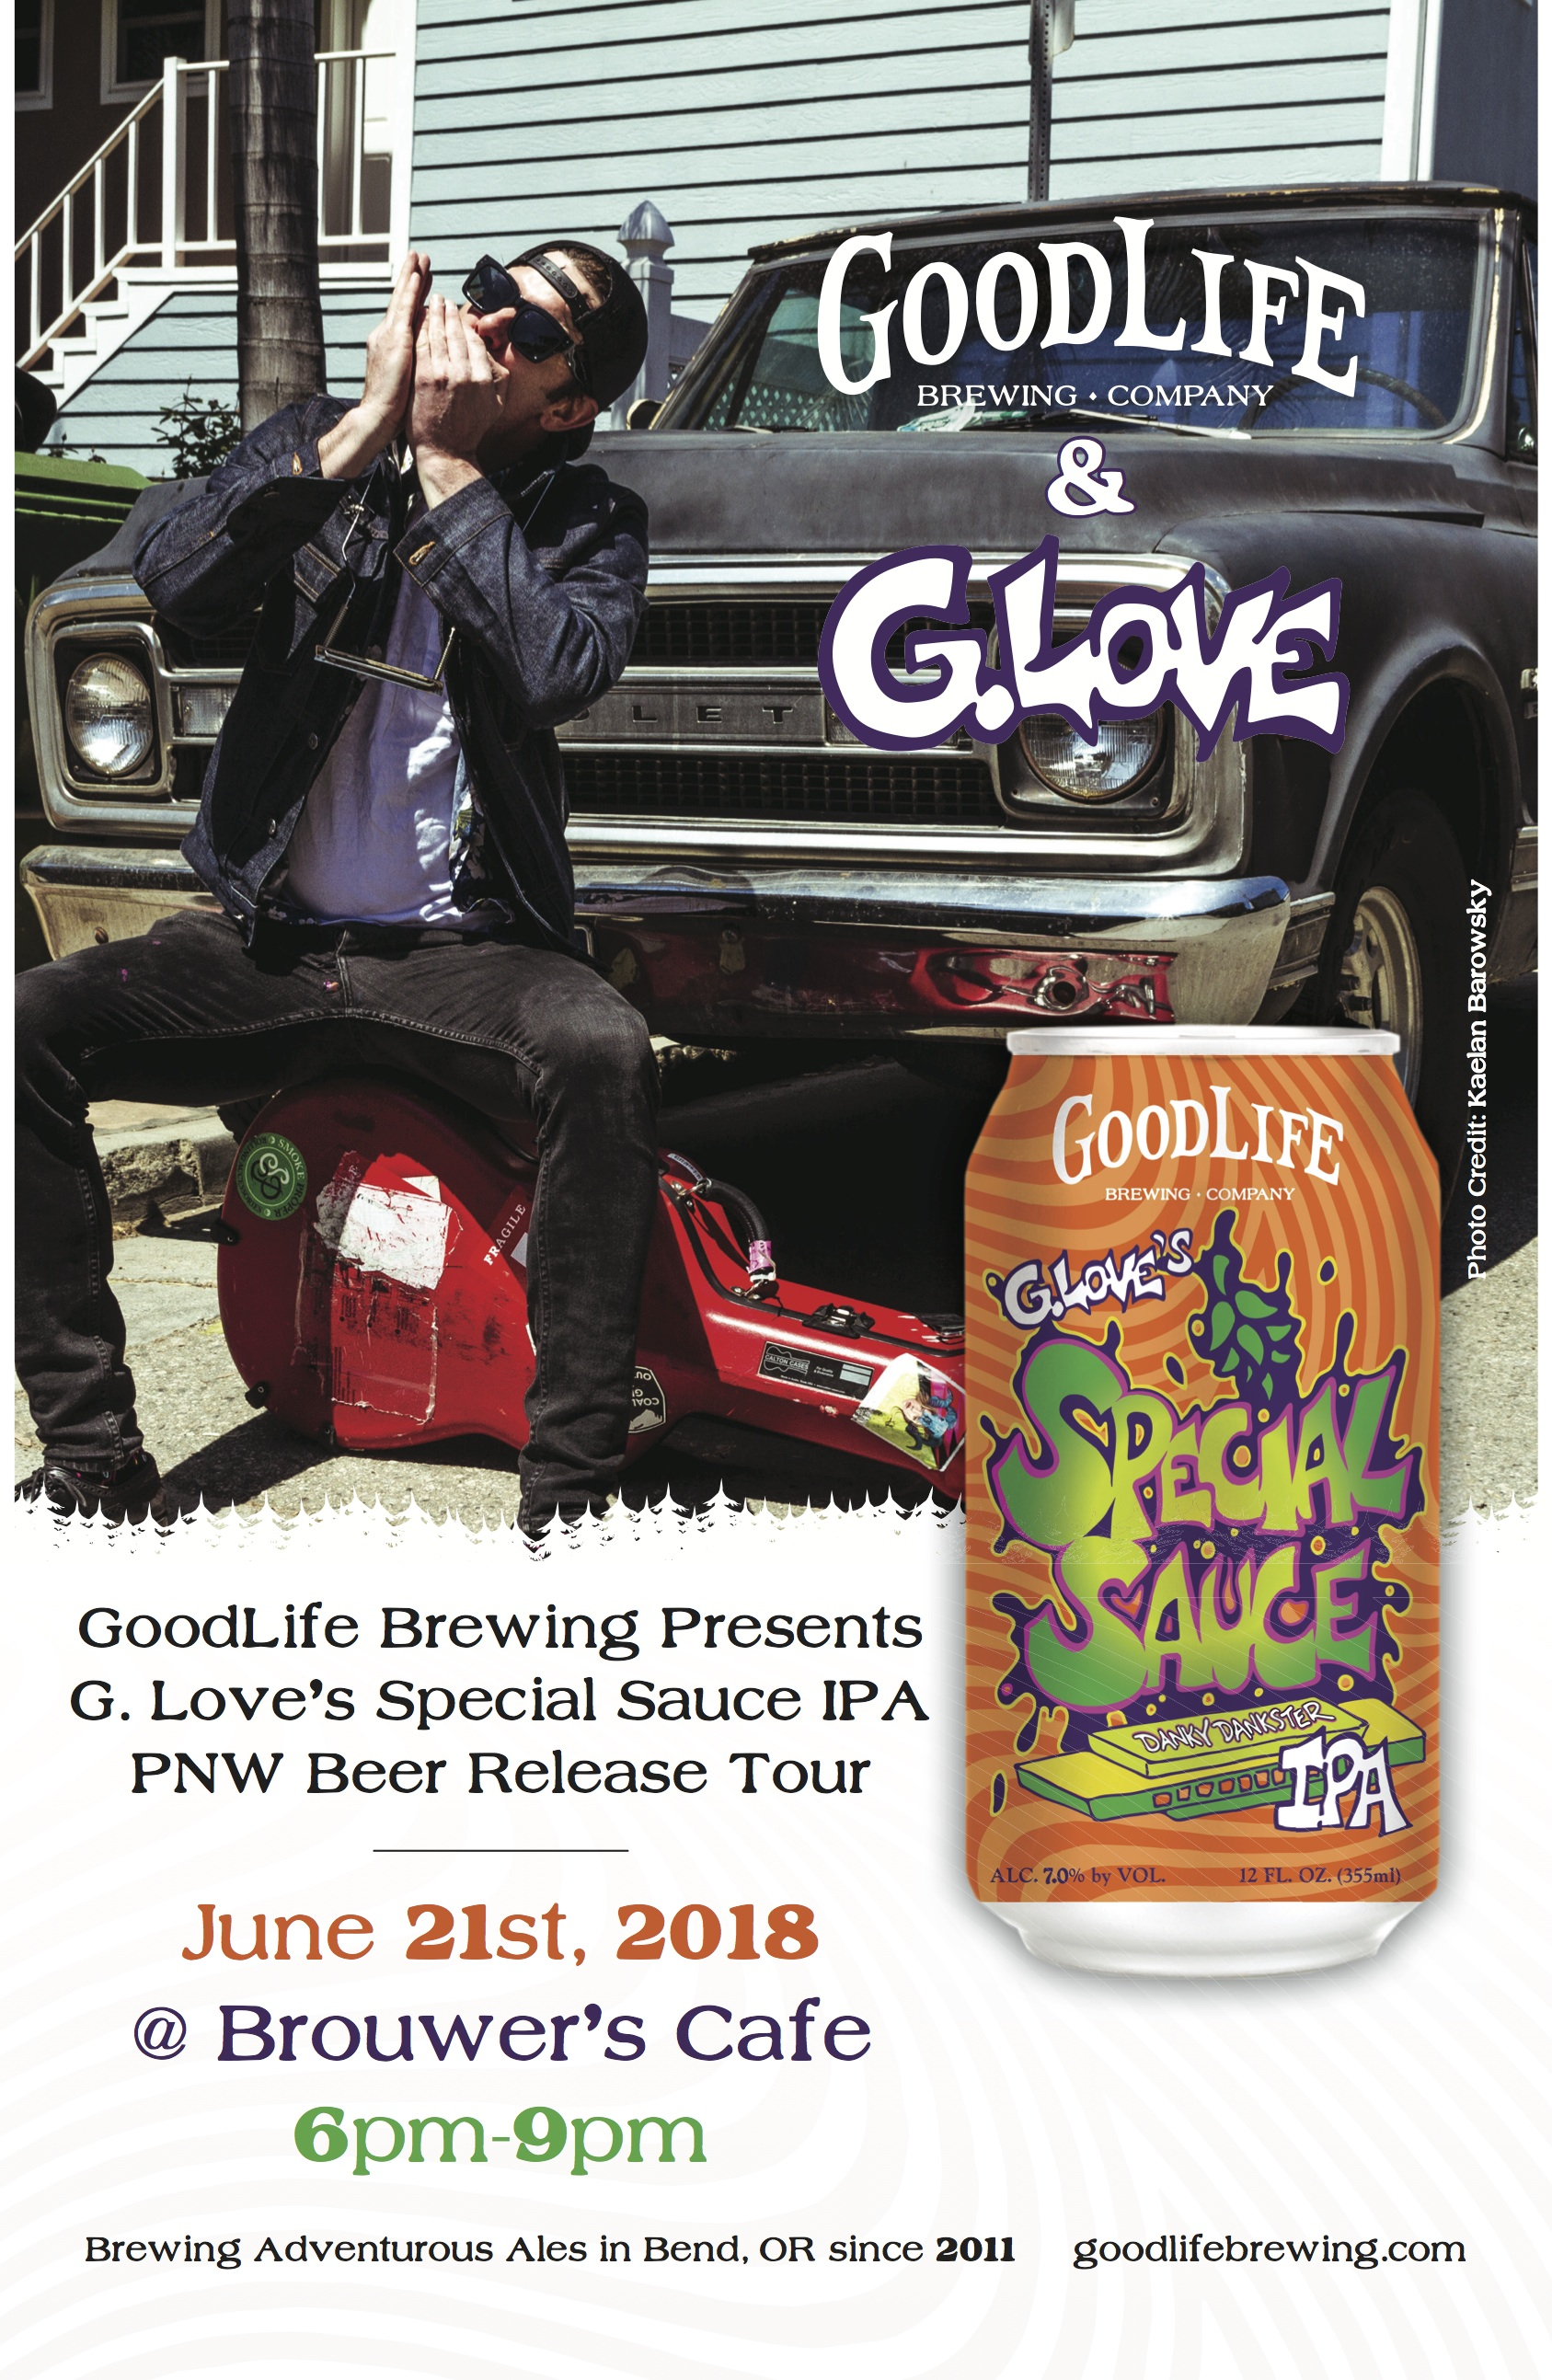 Thursday, June 21st 6pm-9pm, Goodlife Brewing Presents G. Love Special Sauce IPA Release